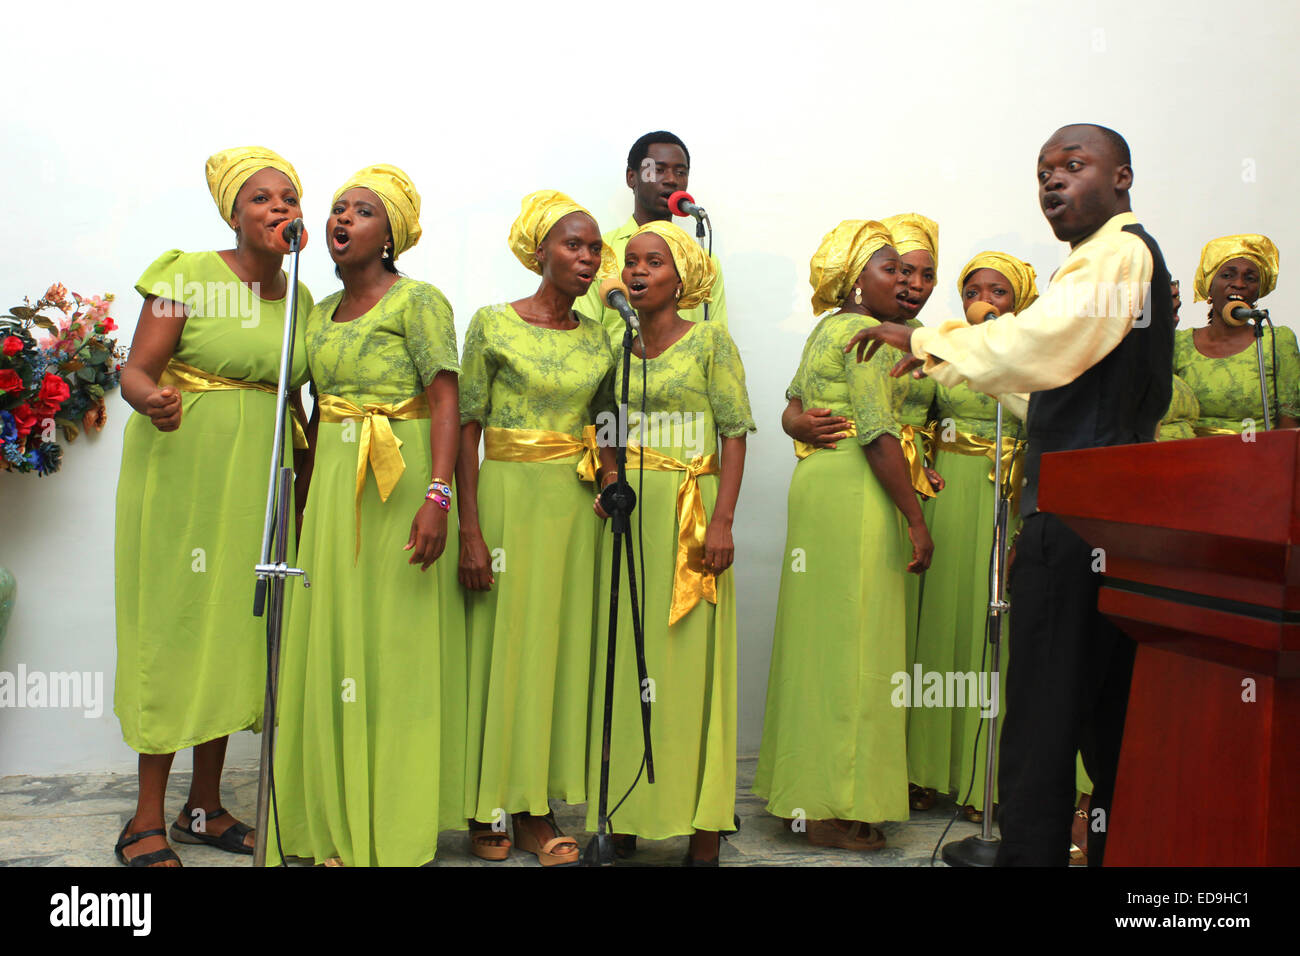 Choir Members of a pentecostal church giving a rendition during service in Lagos, Nigeria - Stock Image